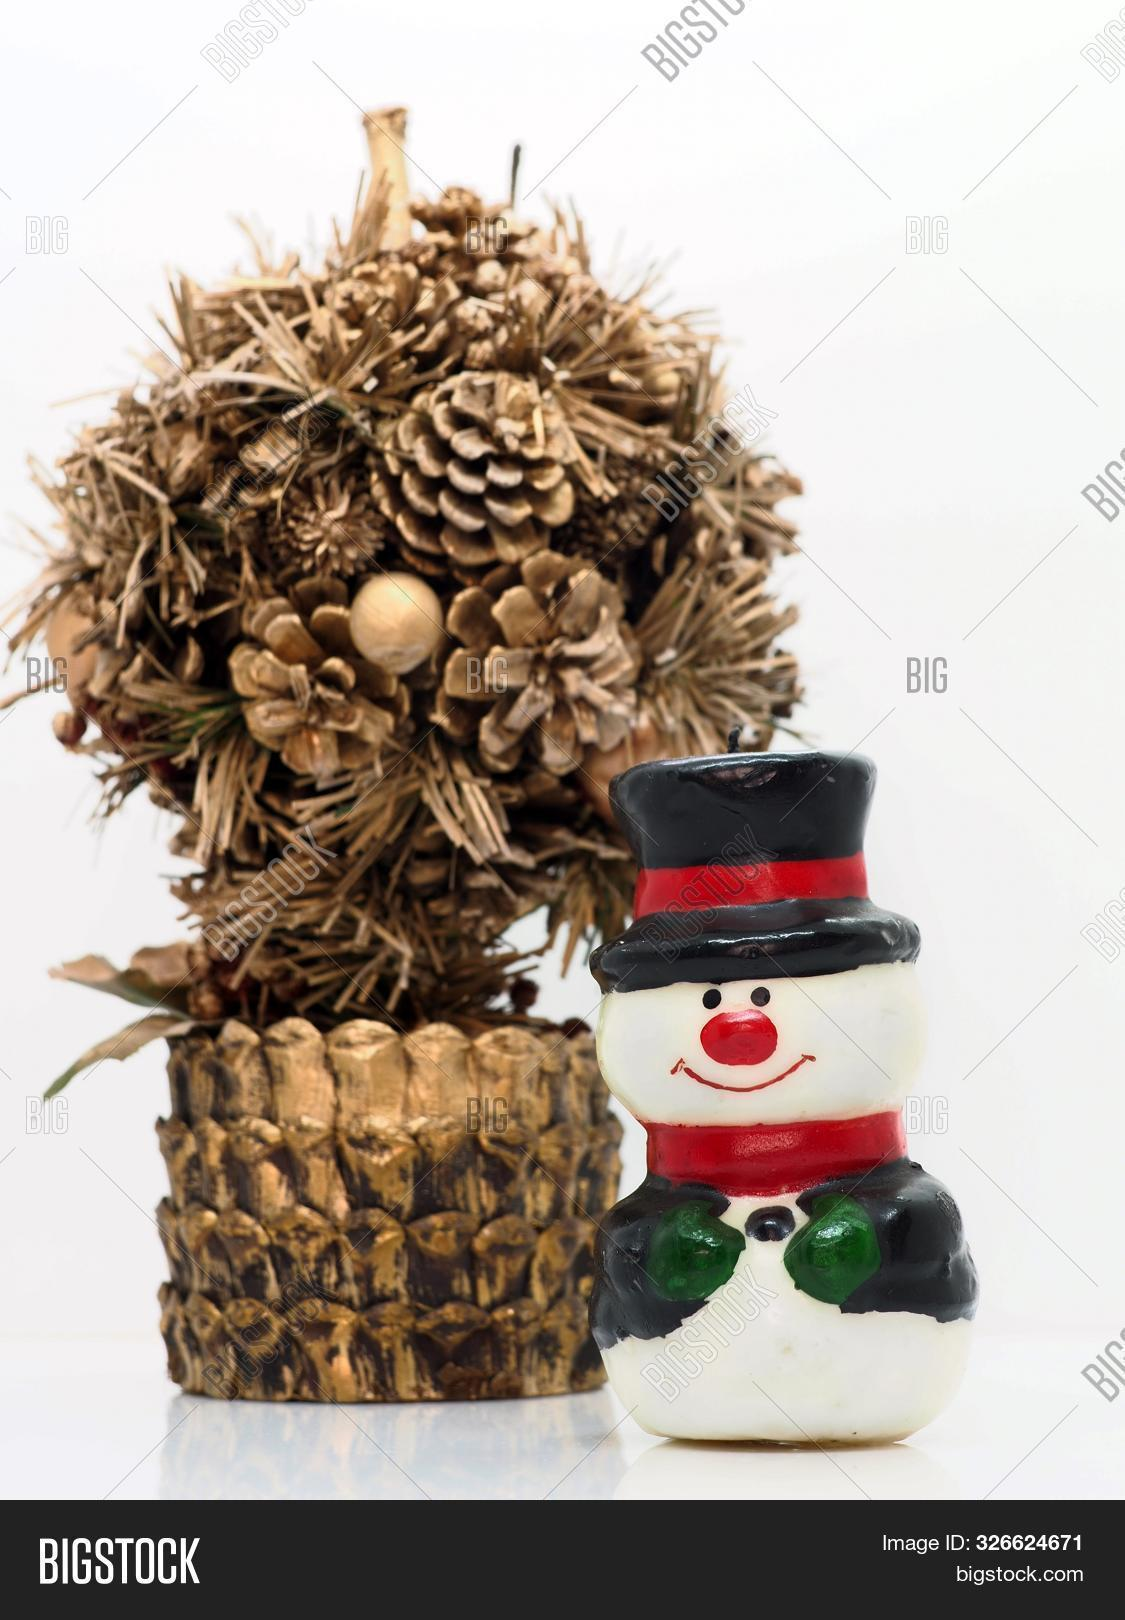 Small Snowman Golden Image Photo Free Trial Bigstock